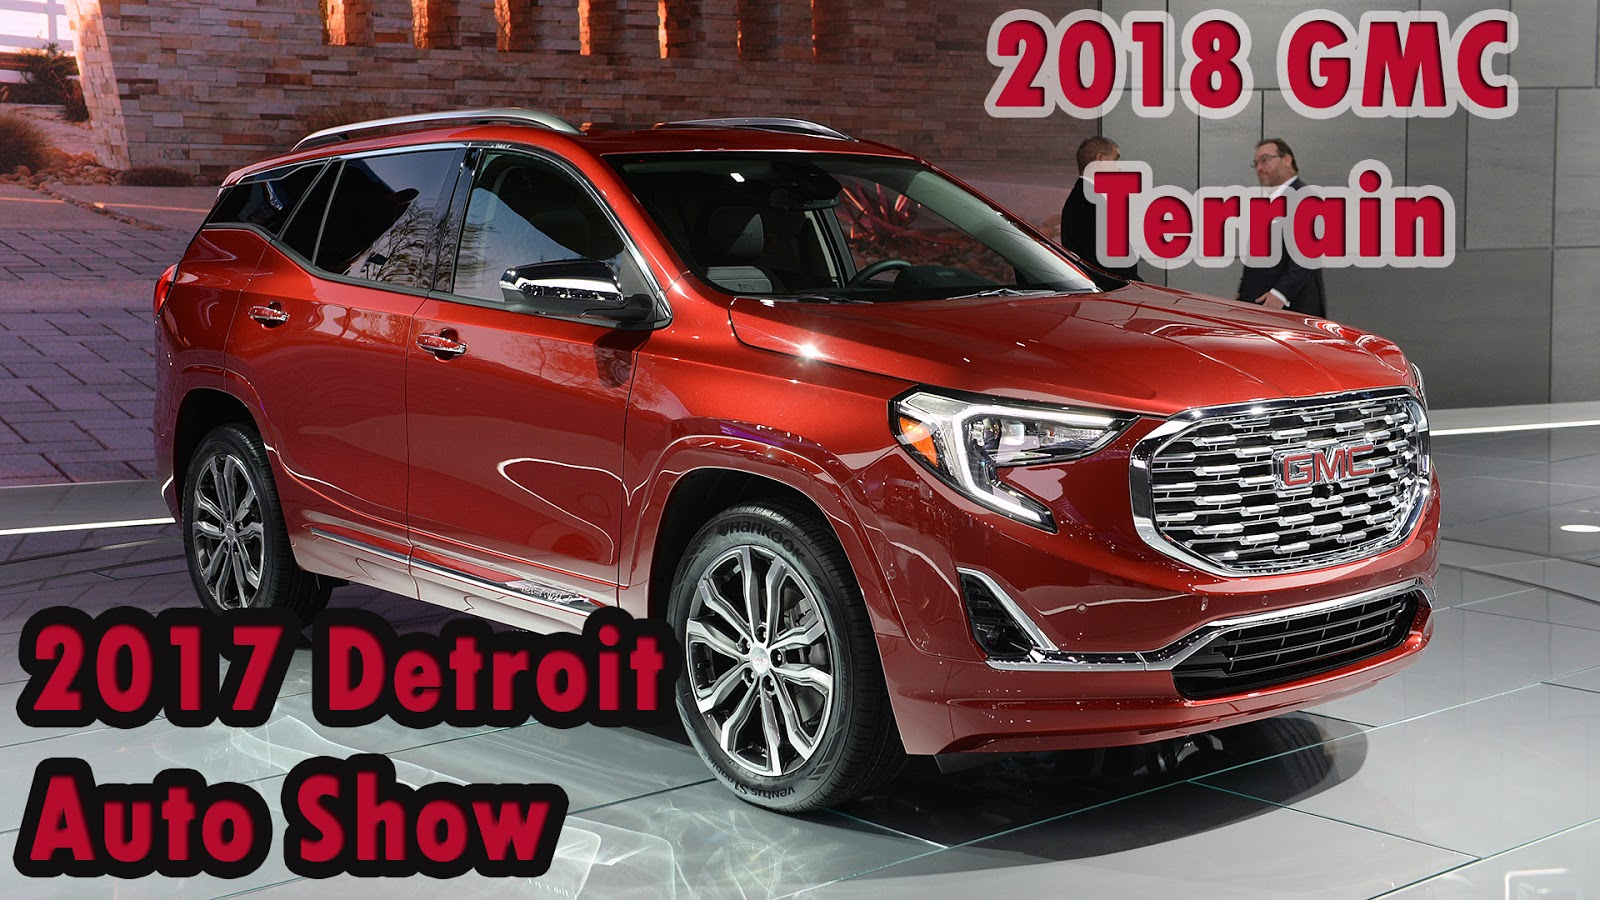 2017 Detroit Auto Show Review 2018 Gmc Terrain Loses The